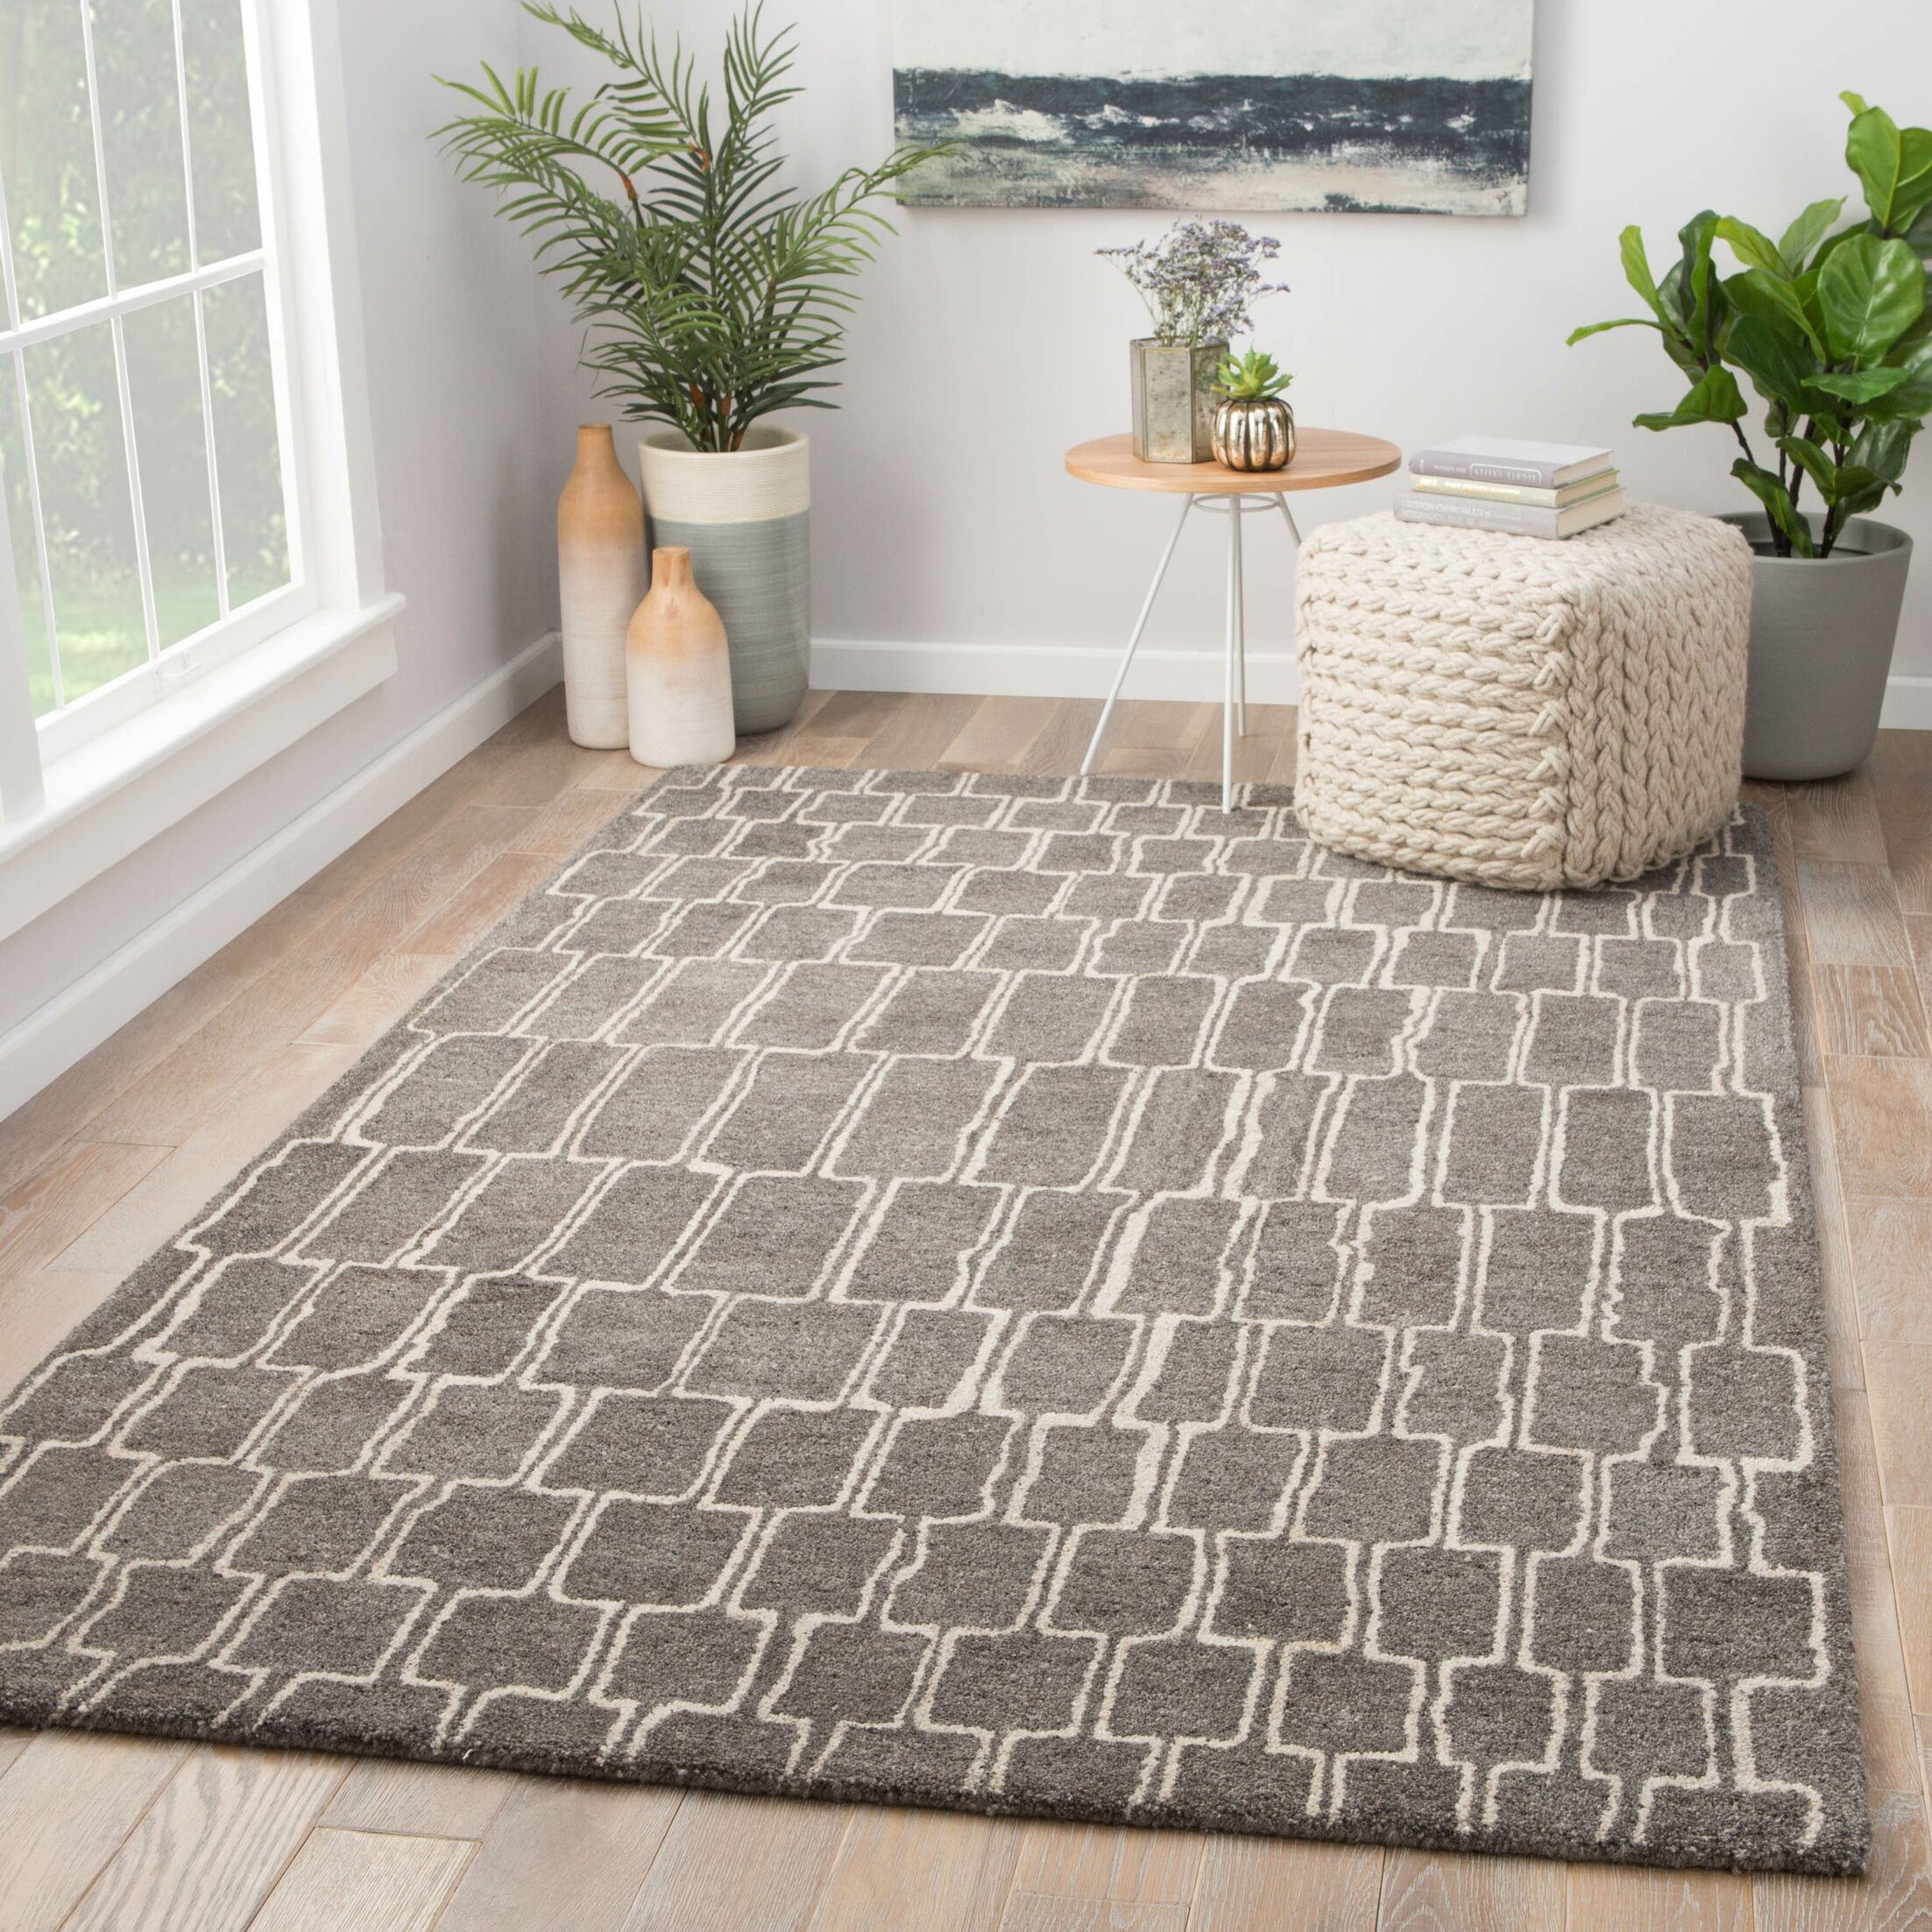 Slate Hand-Tufted Wool Brown Area Rug Rug Size: Rectangle 2' x 3'